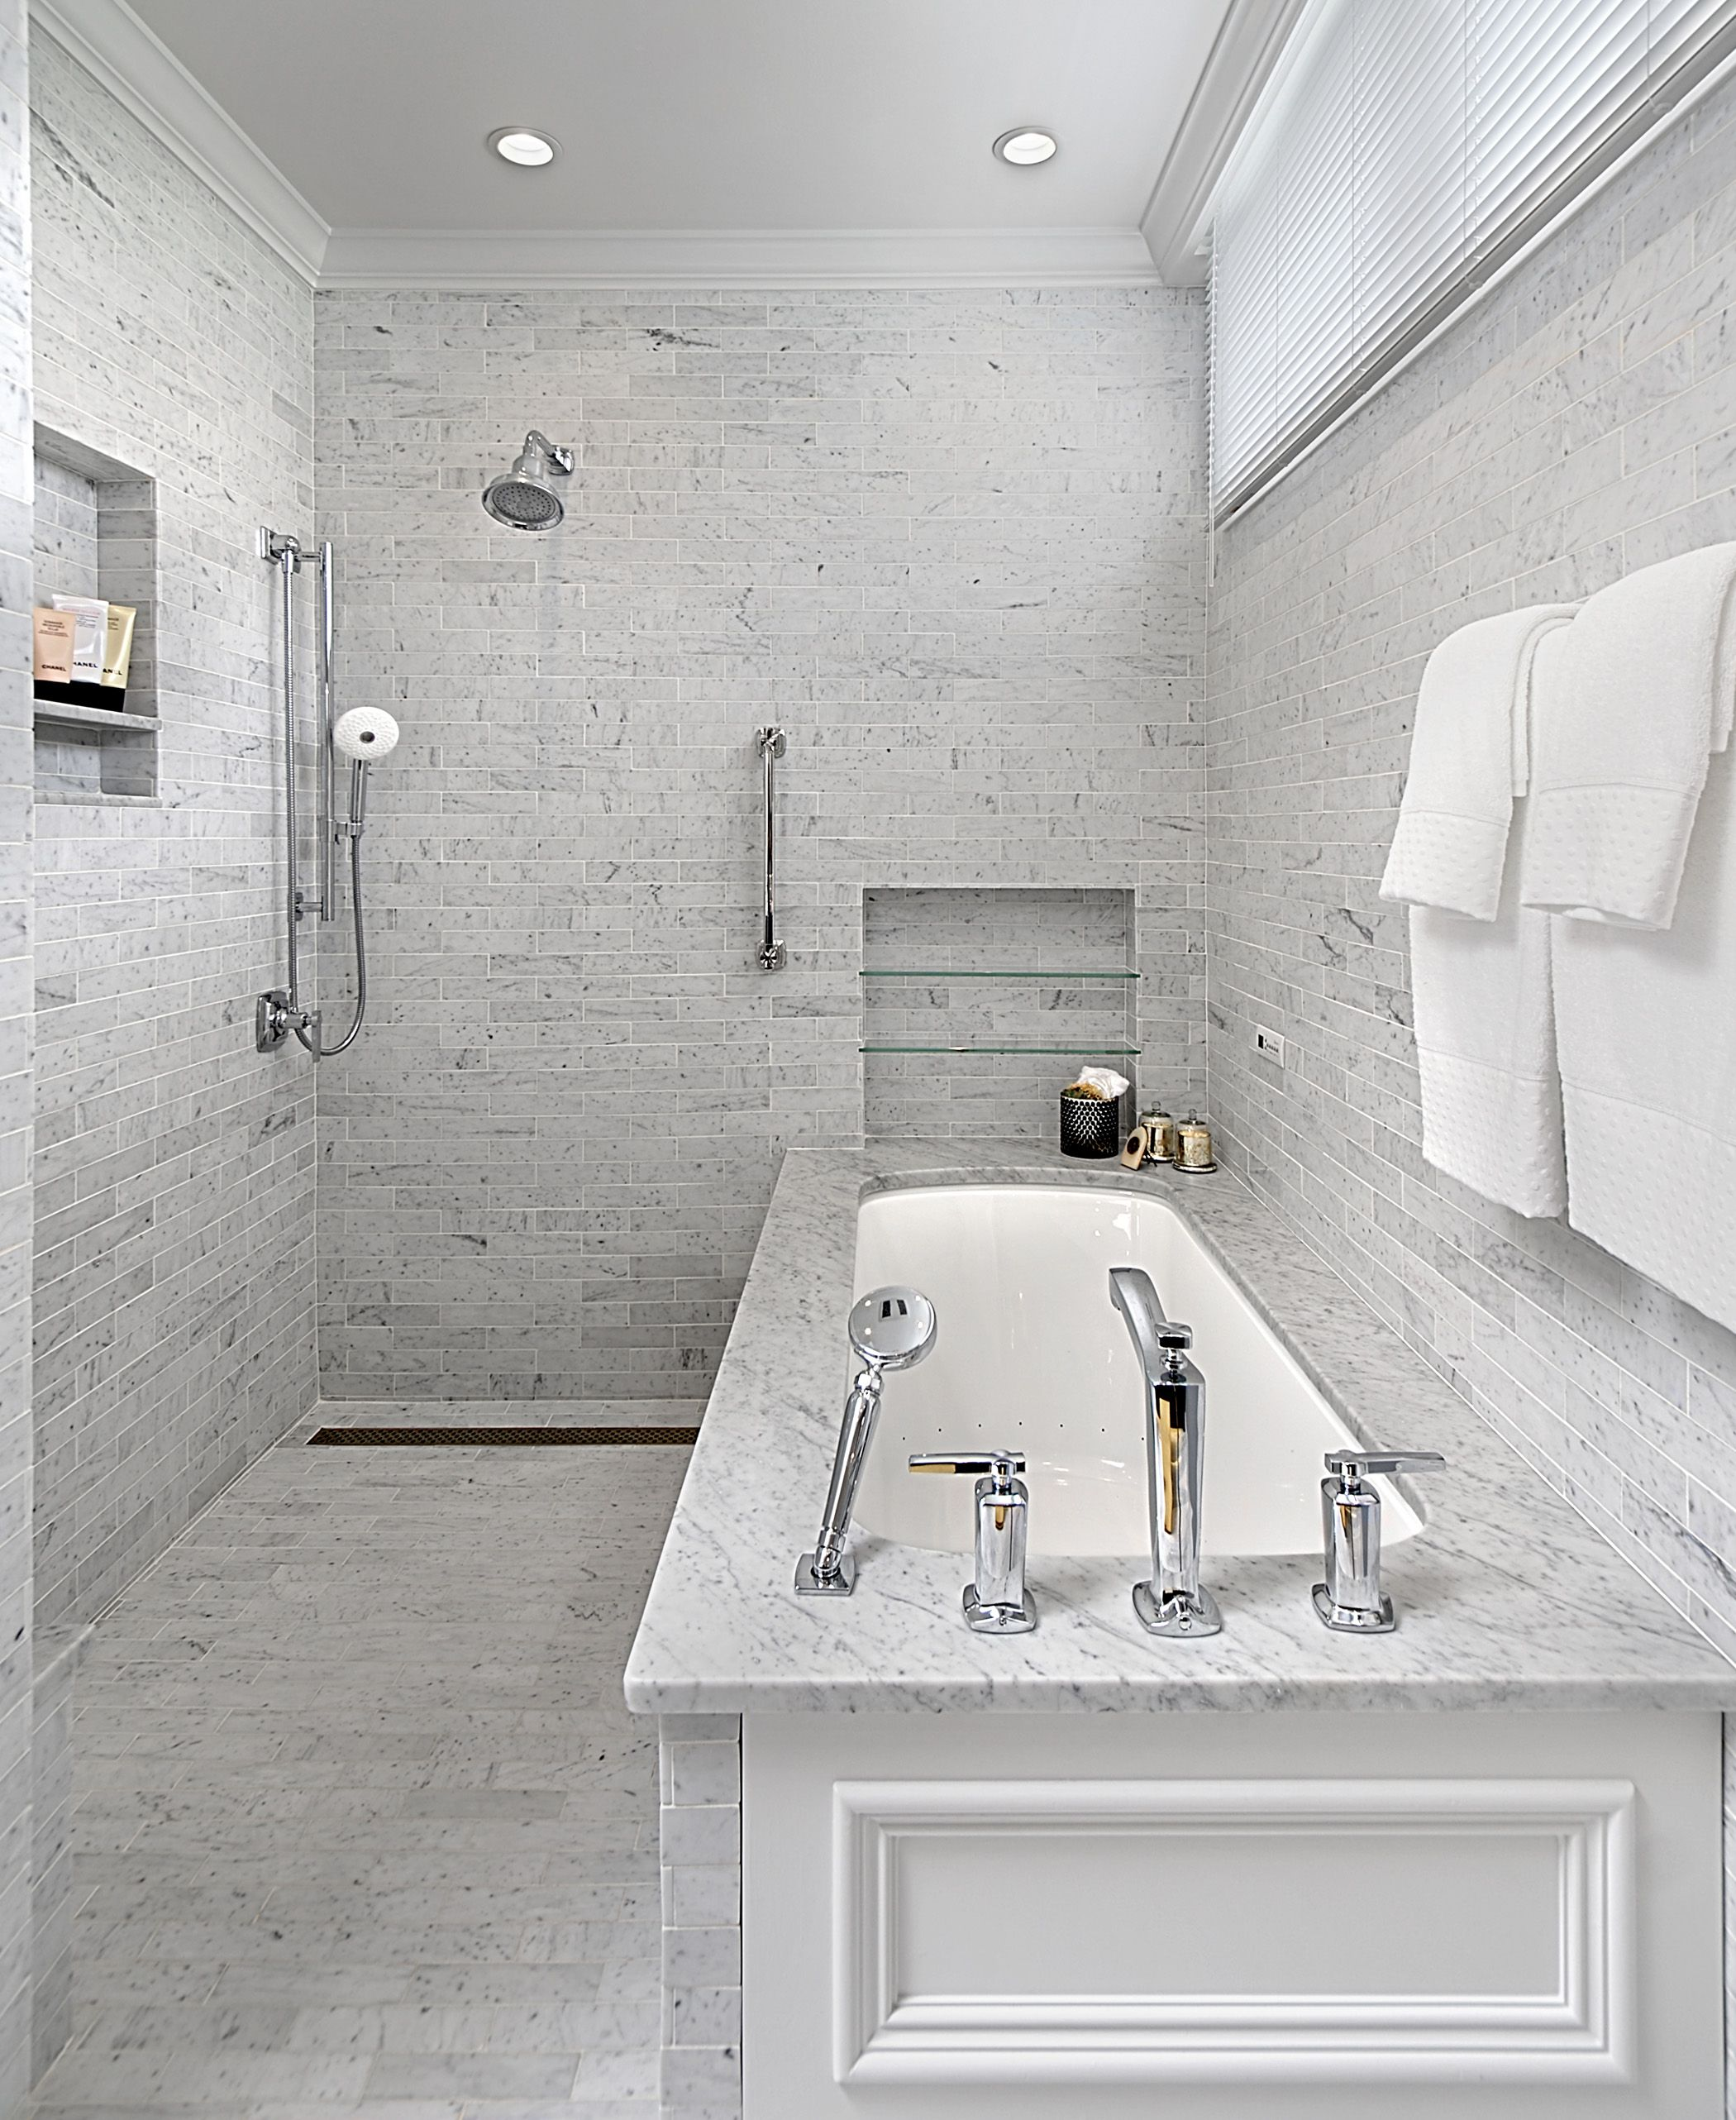 Modern Wet Room Design With Carrara Marble Walls And Radiant Heat Floors Designed By Benvenuti And Stein Wet Room Bathroom Wet Rooms Master Bathroom Shower